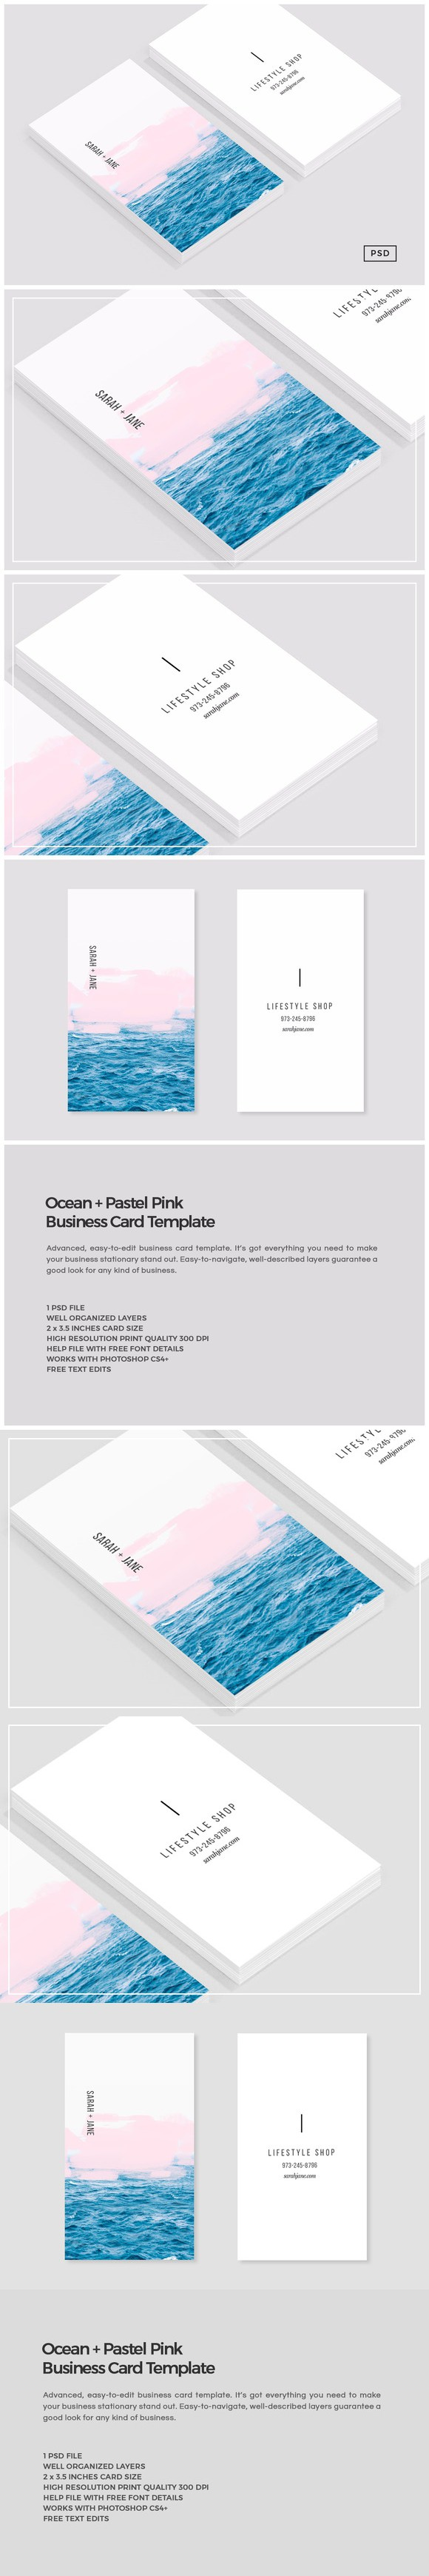 Ocean pink business card template book layout pinterest ocean pink business card template reheart Image collections